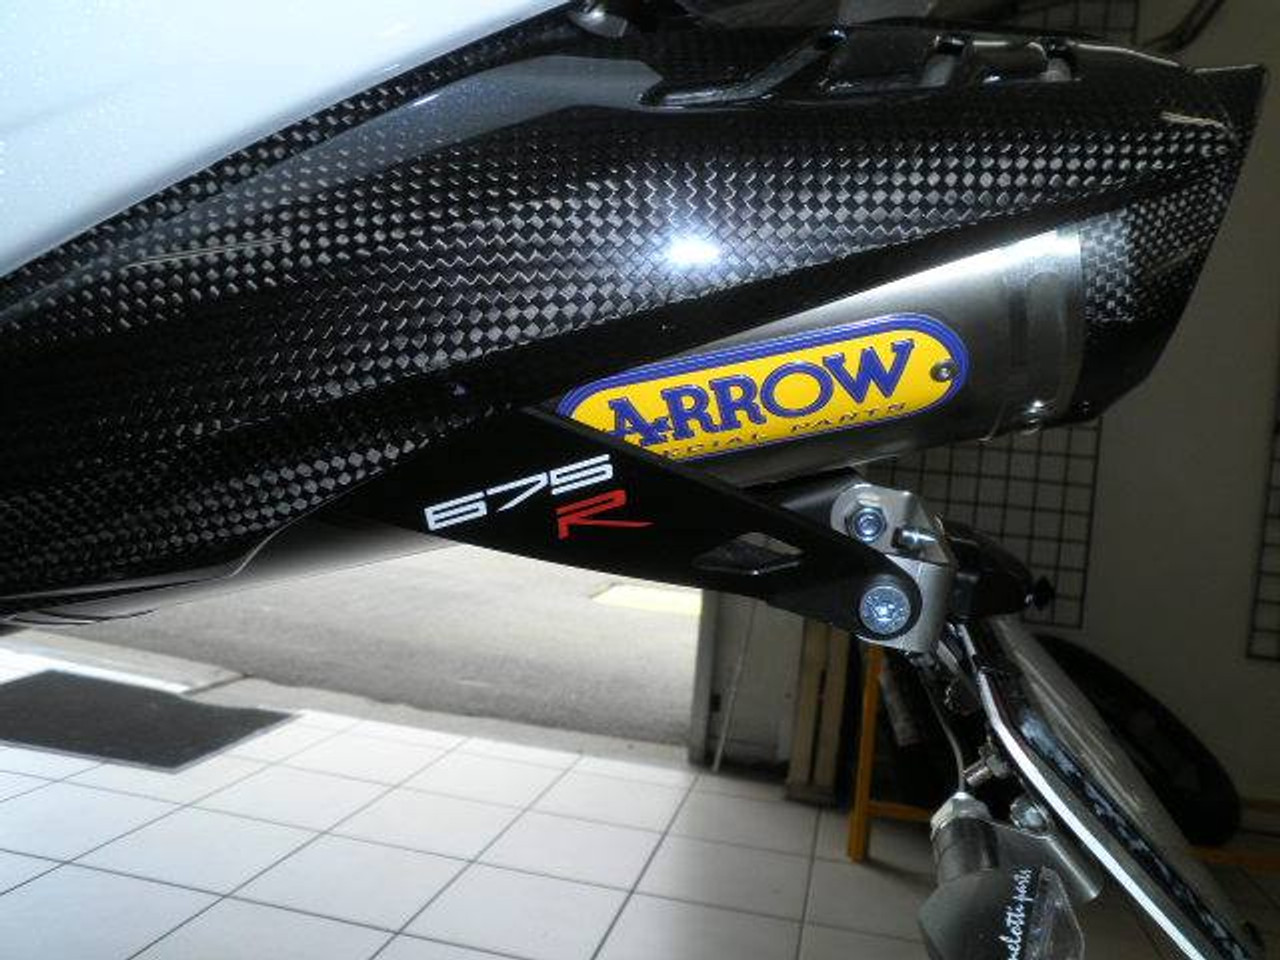 Melotti Racing Triumph DAYTONA 675-R (2006-2012),  Number Plate Holder, Tail Tidy, CNC Machined Motorcycle, Natural Steel, Made in Italy